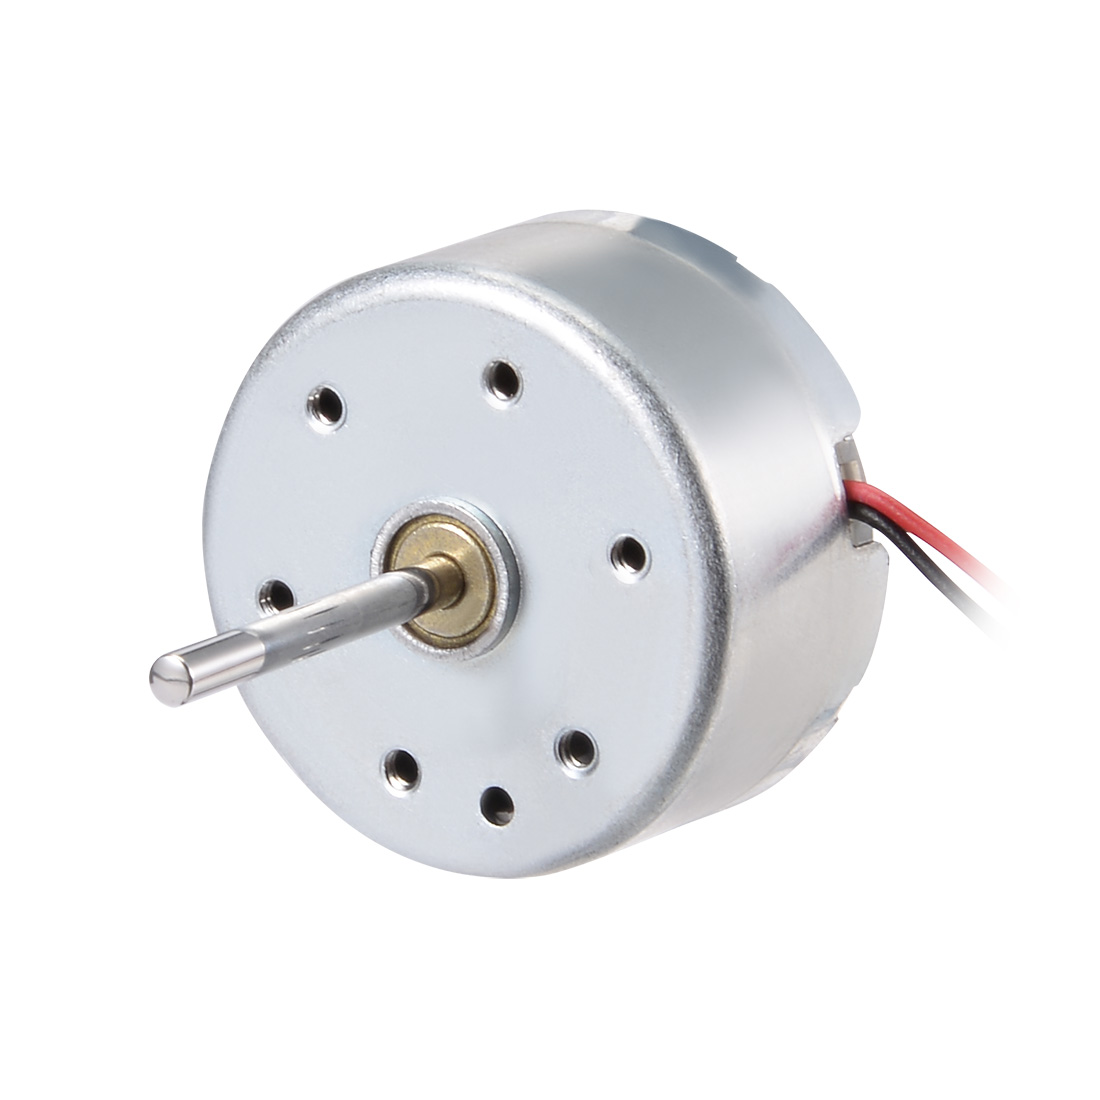 Micro Motor DC 5V 6300RPM 2 Wire High Speed Motor for DIY Toy Car Remote Control